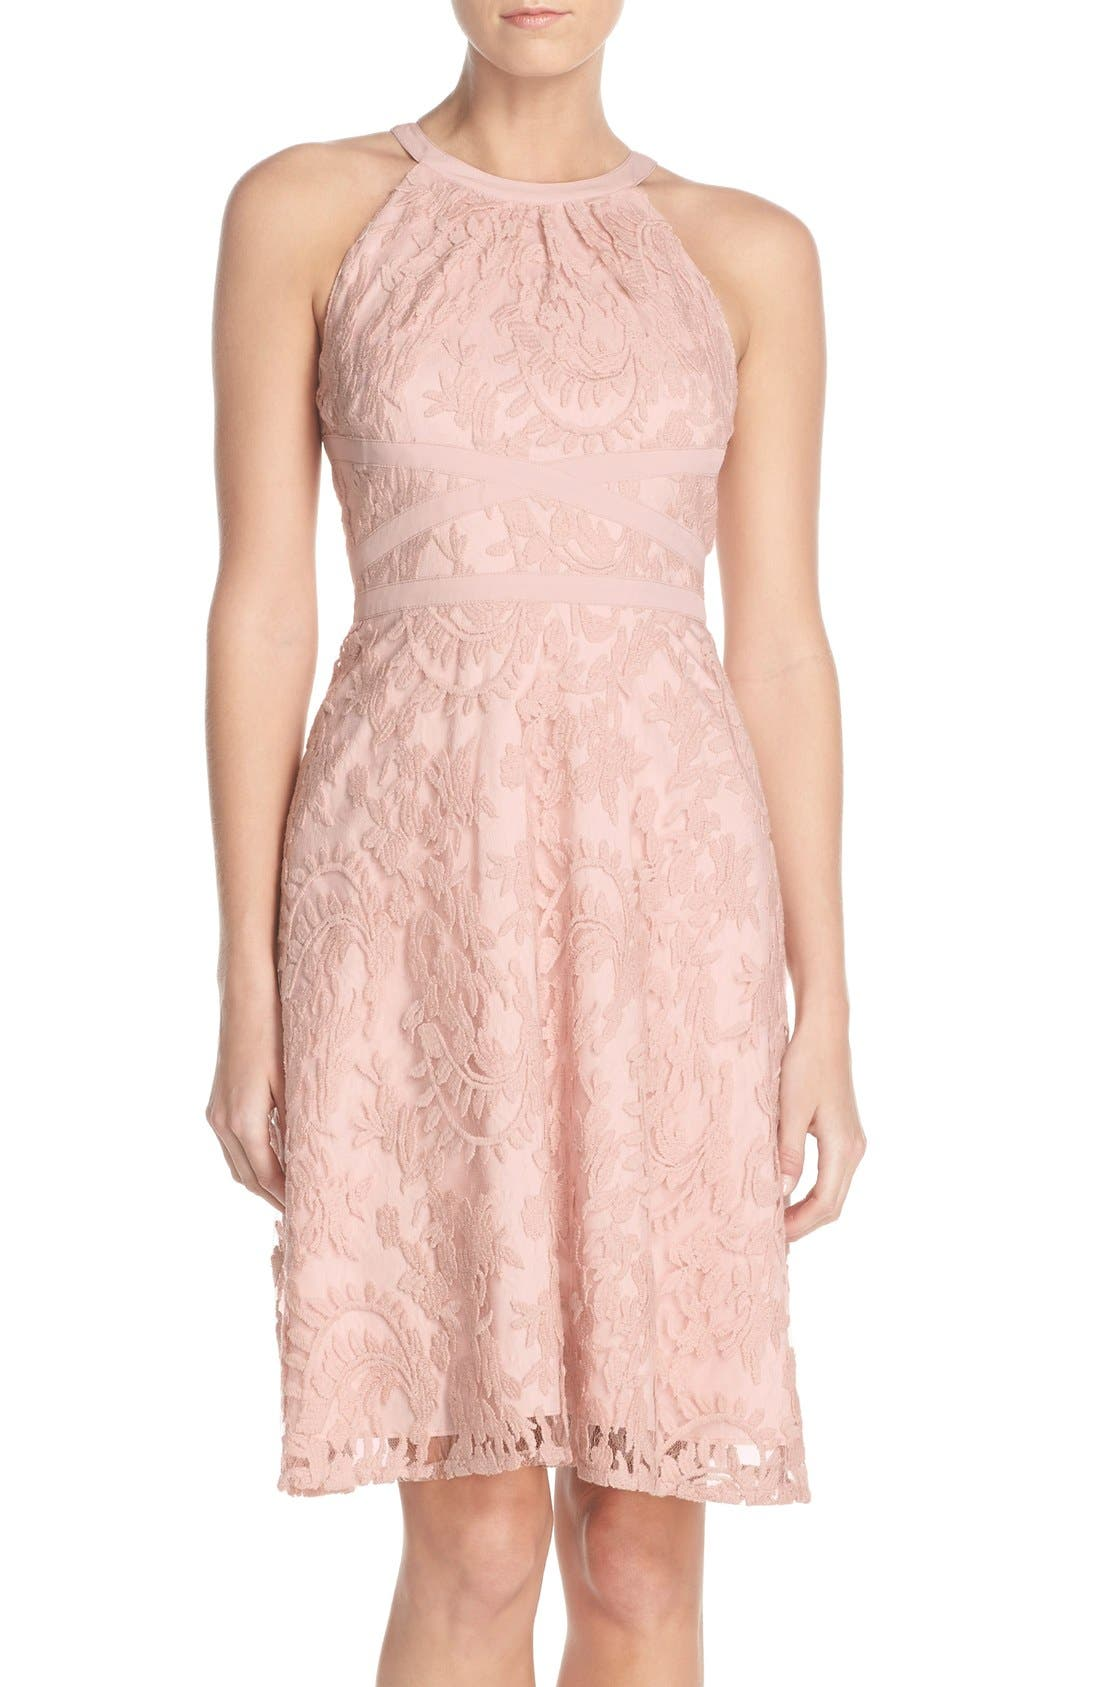 Main Image - Adrianna Papell Embroidered Lace Fit & Flare Dress (Regular & Petite)